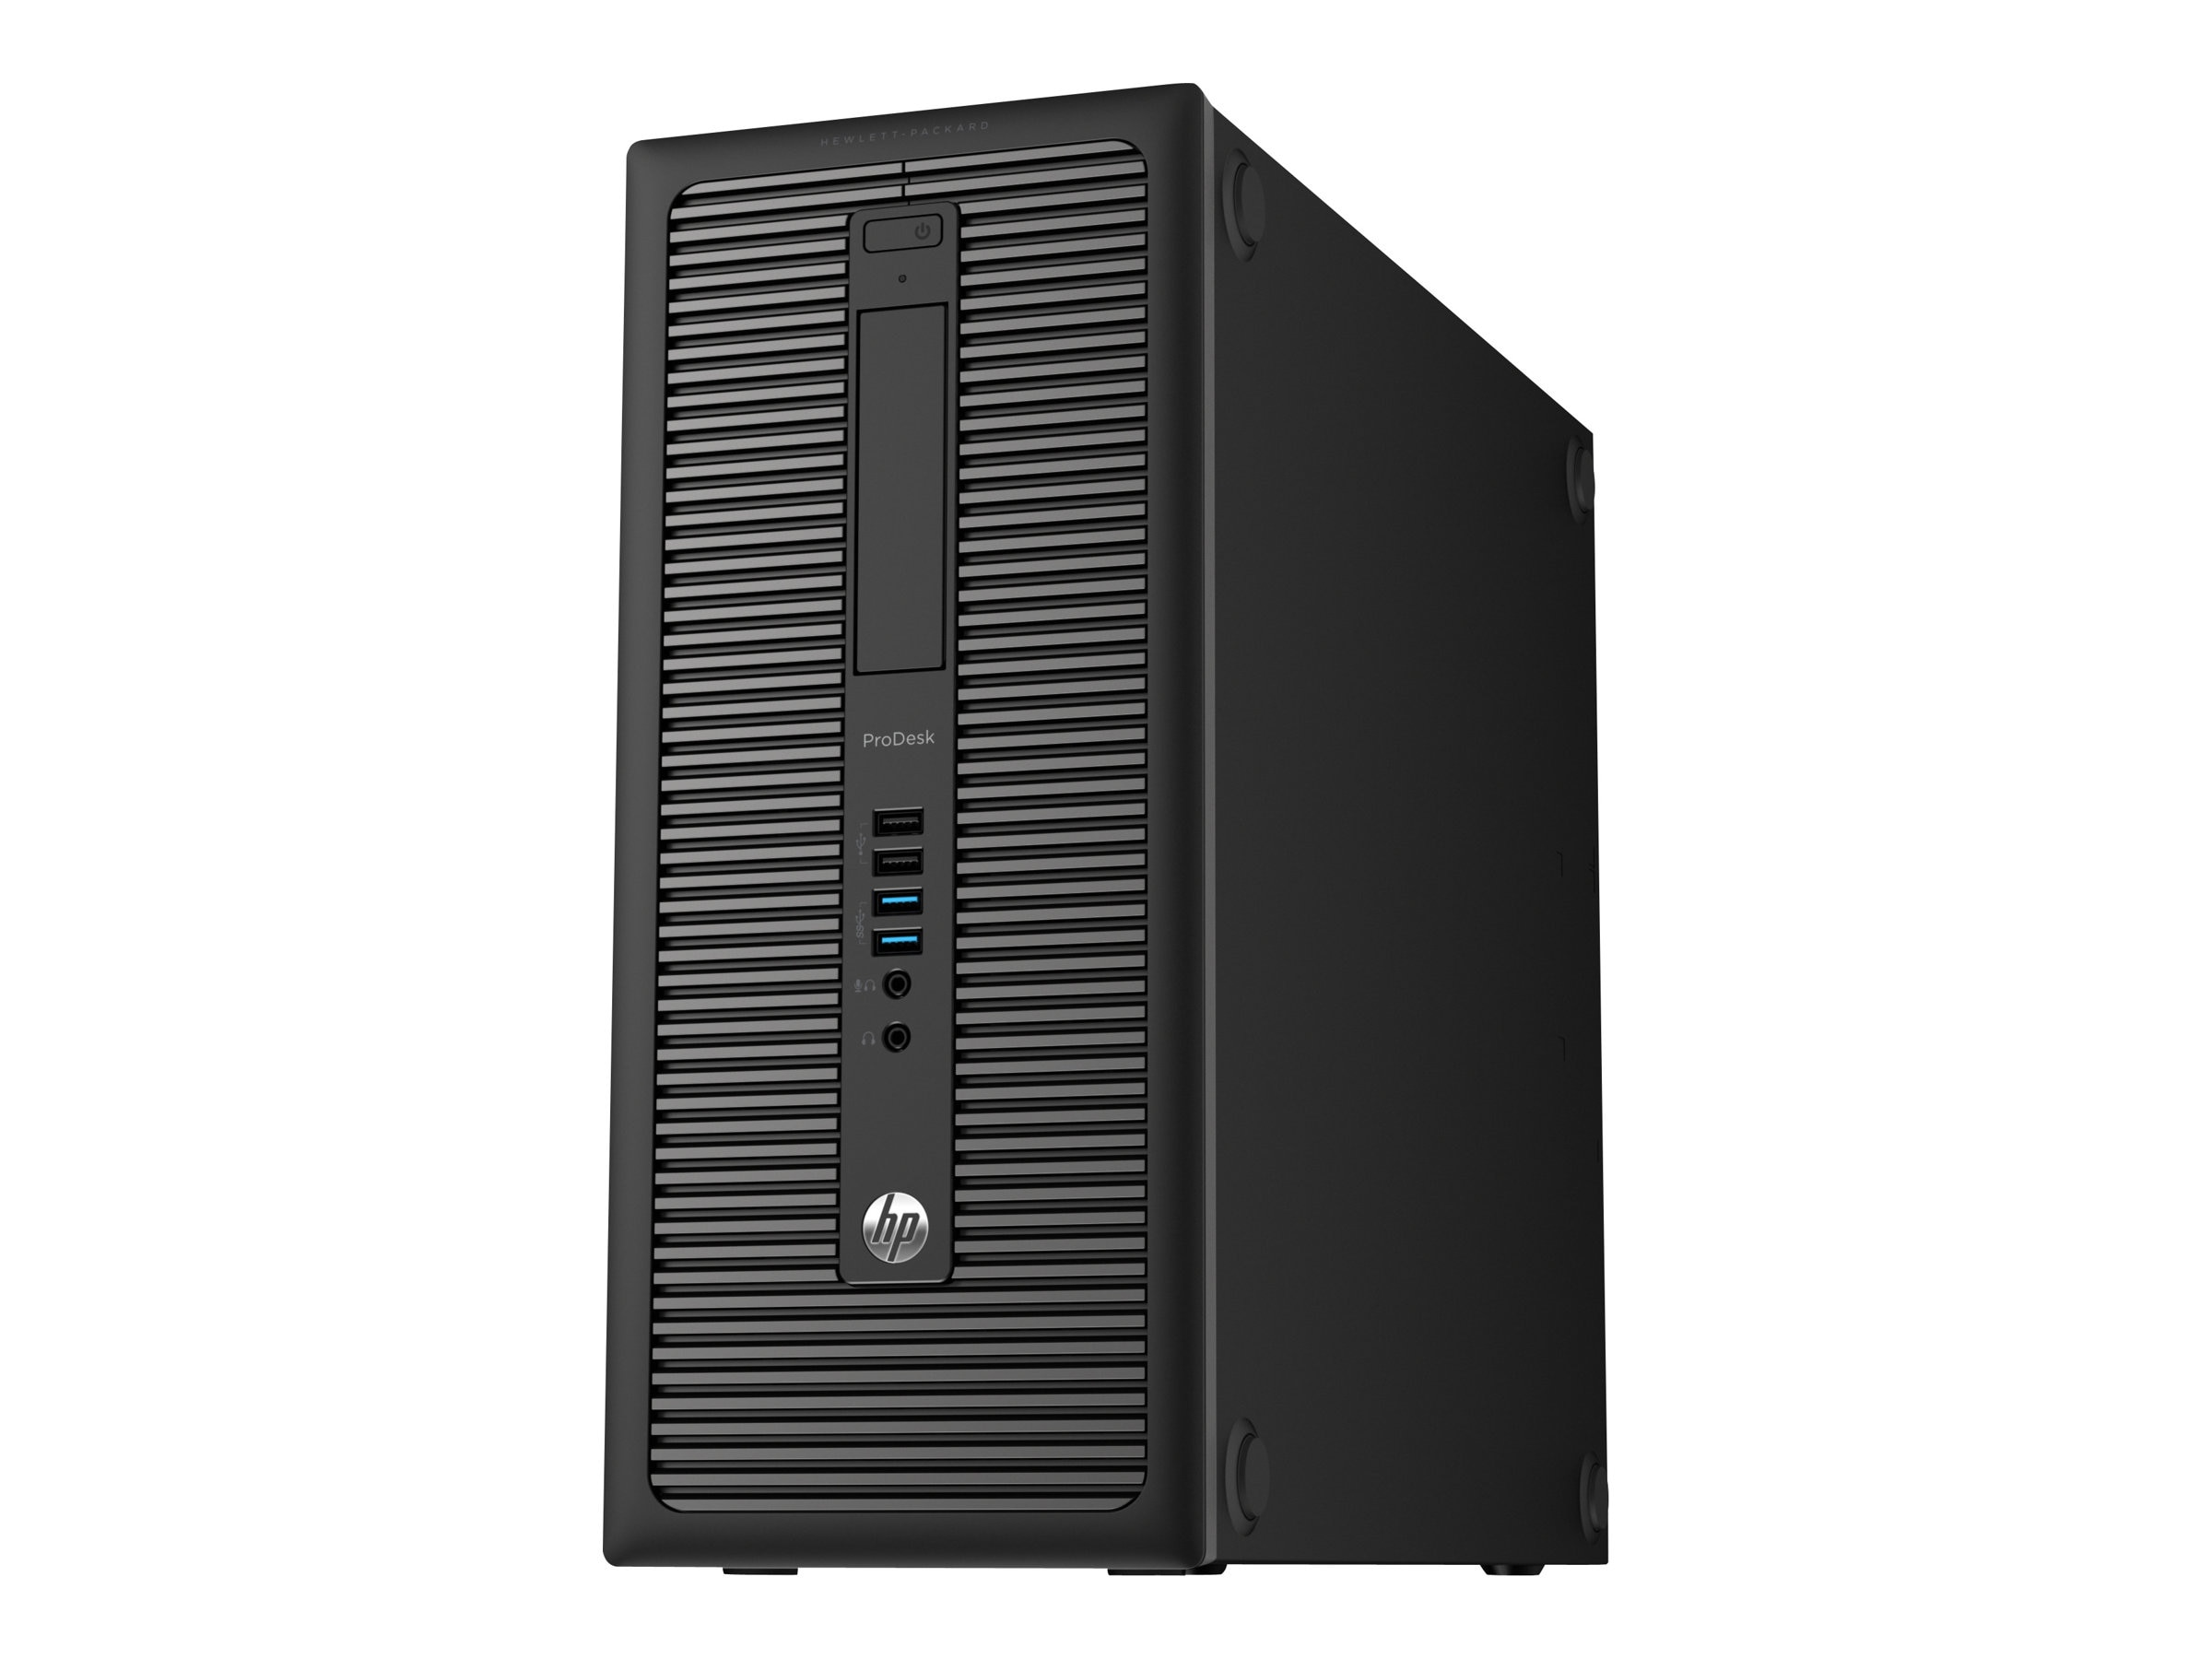 HP EliteDesk 800 Tower Core i5-4570 3.2GHz 8GB 500GB